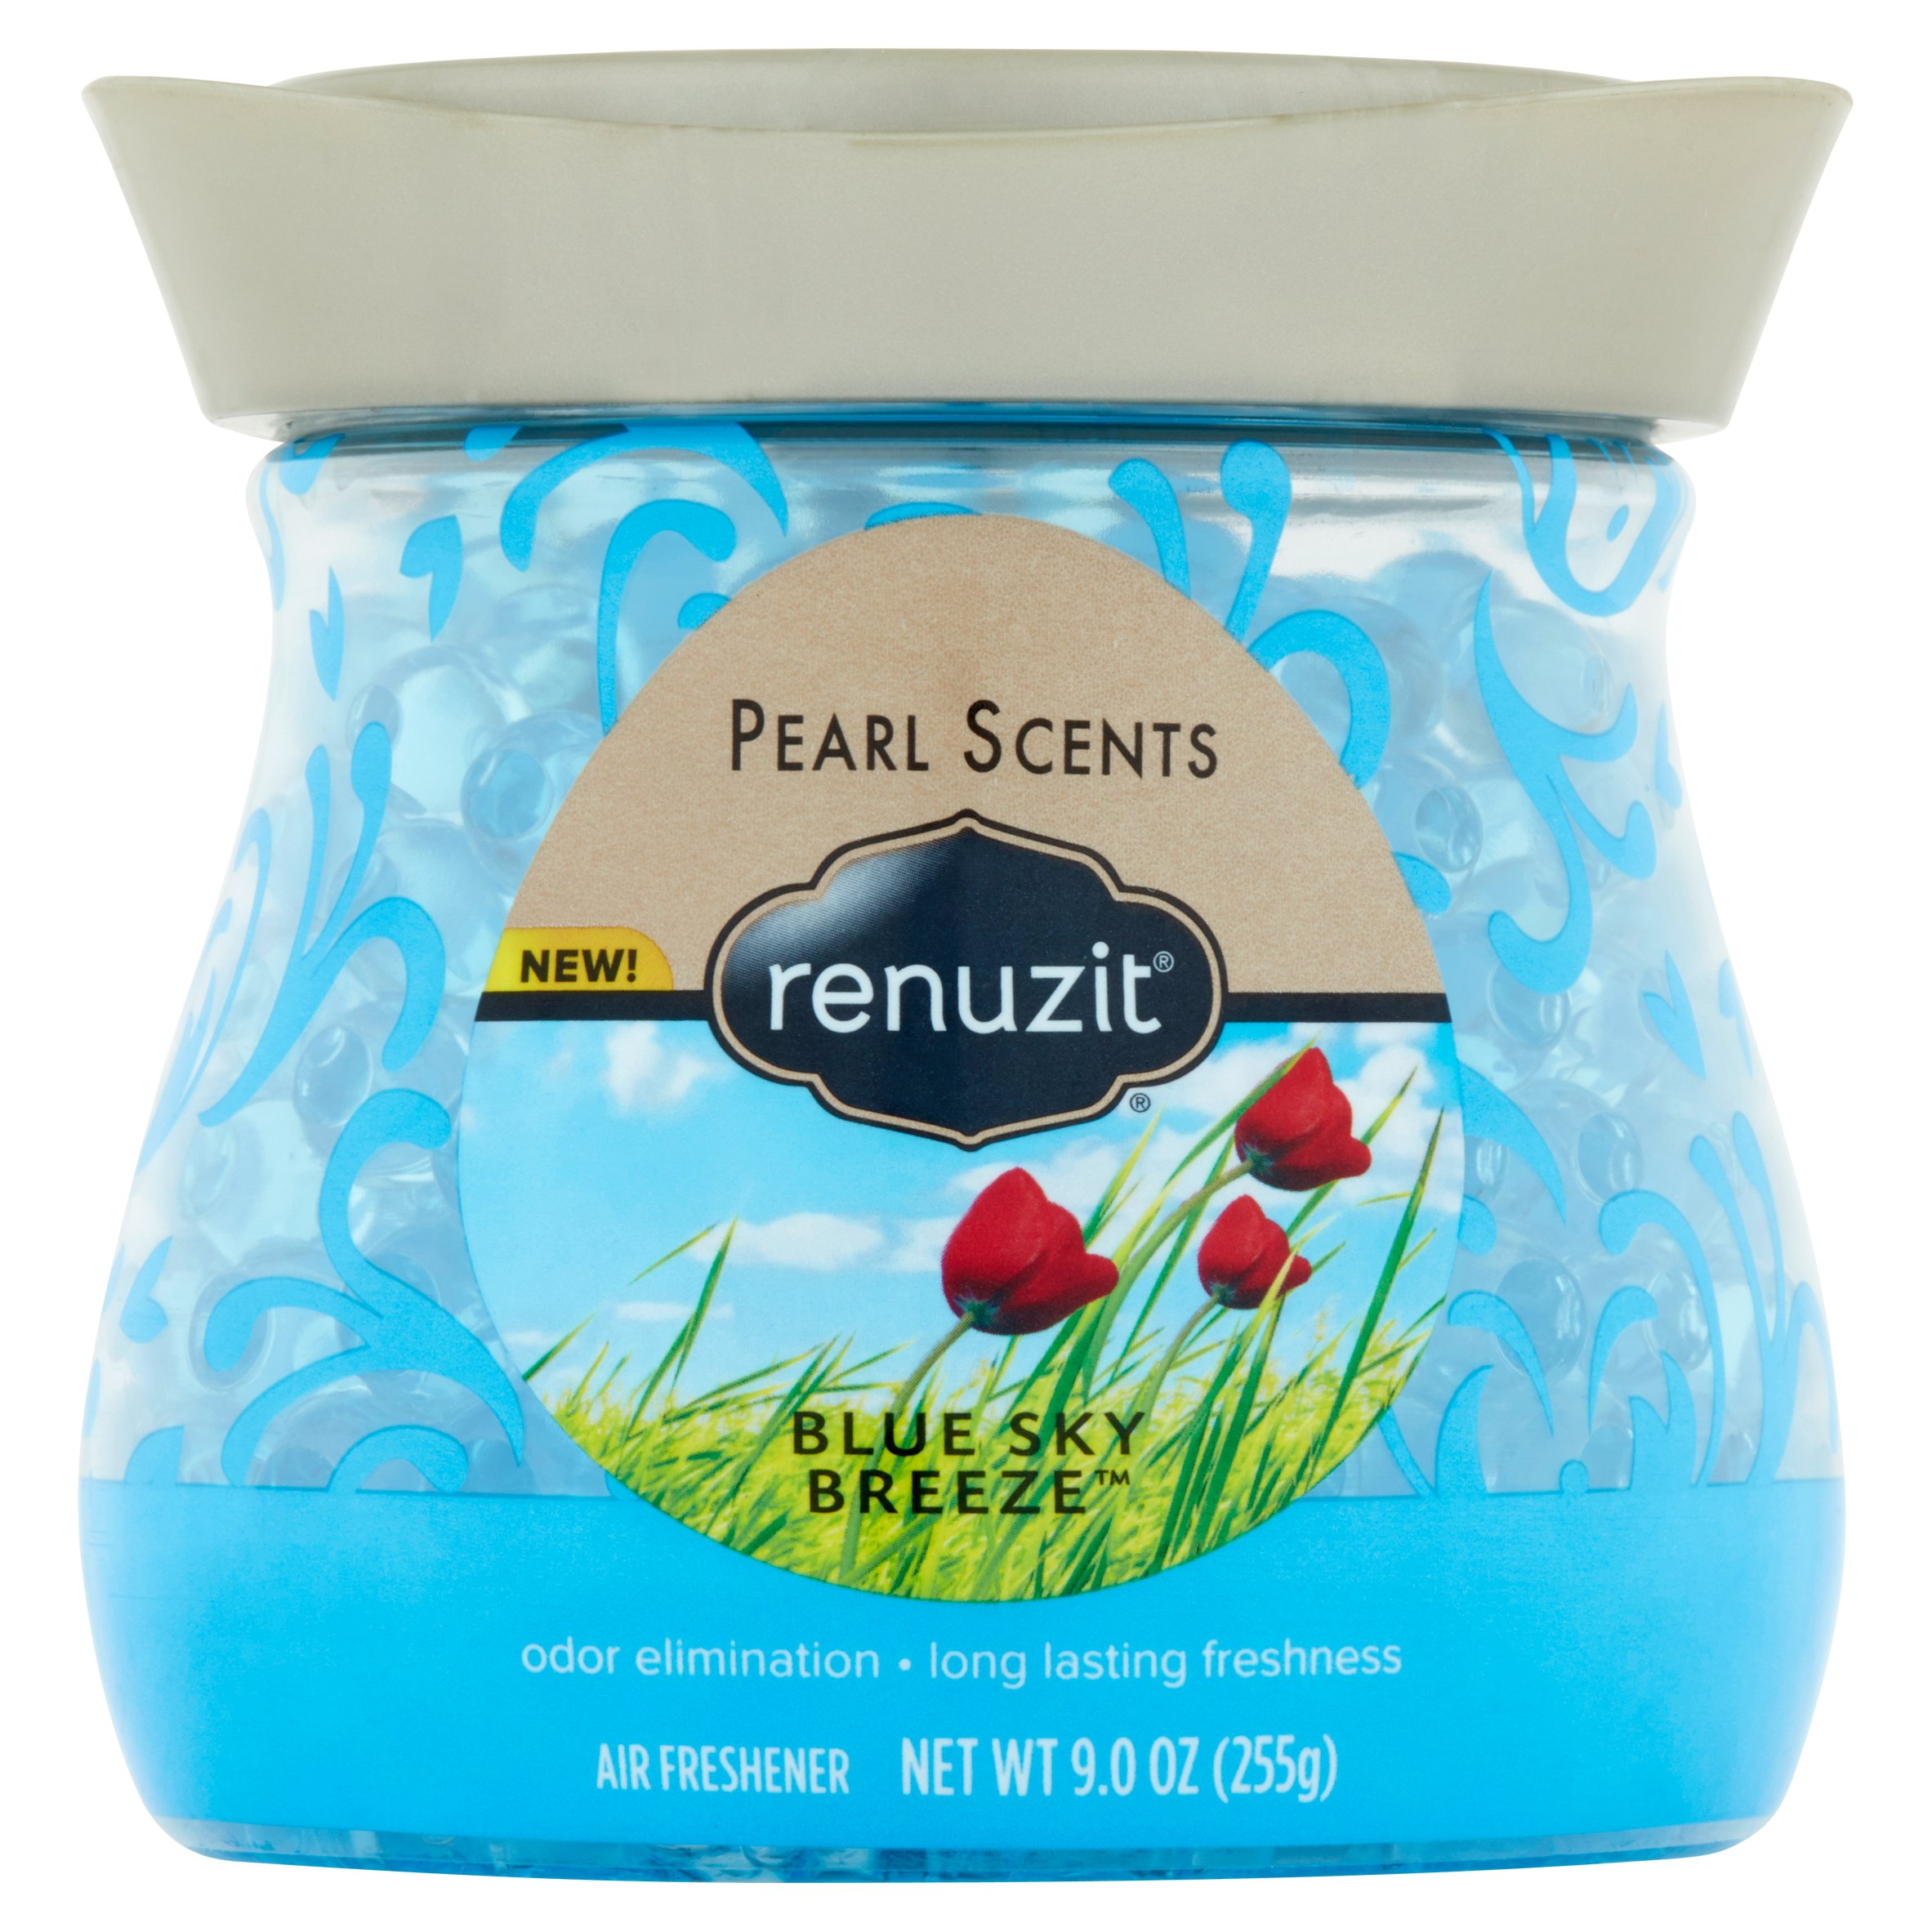 Renuzit Pearl Scent Blue Sky Breeze Air Freshener 9.0oz